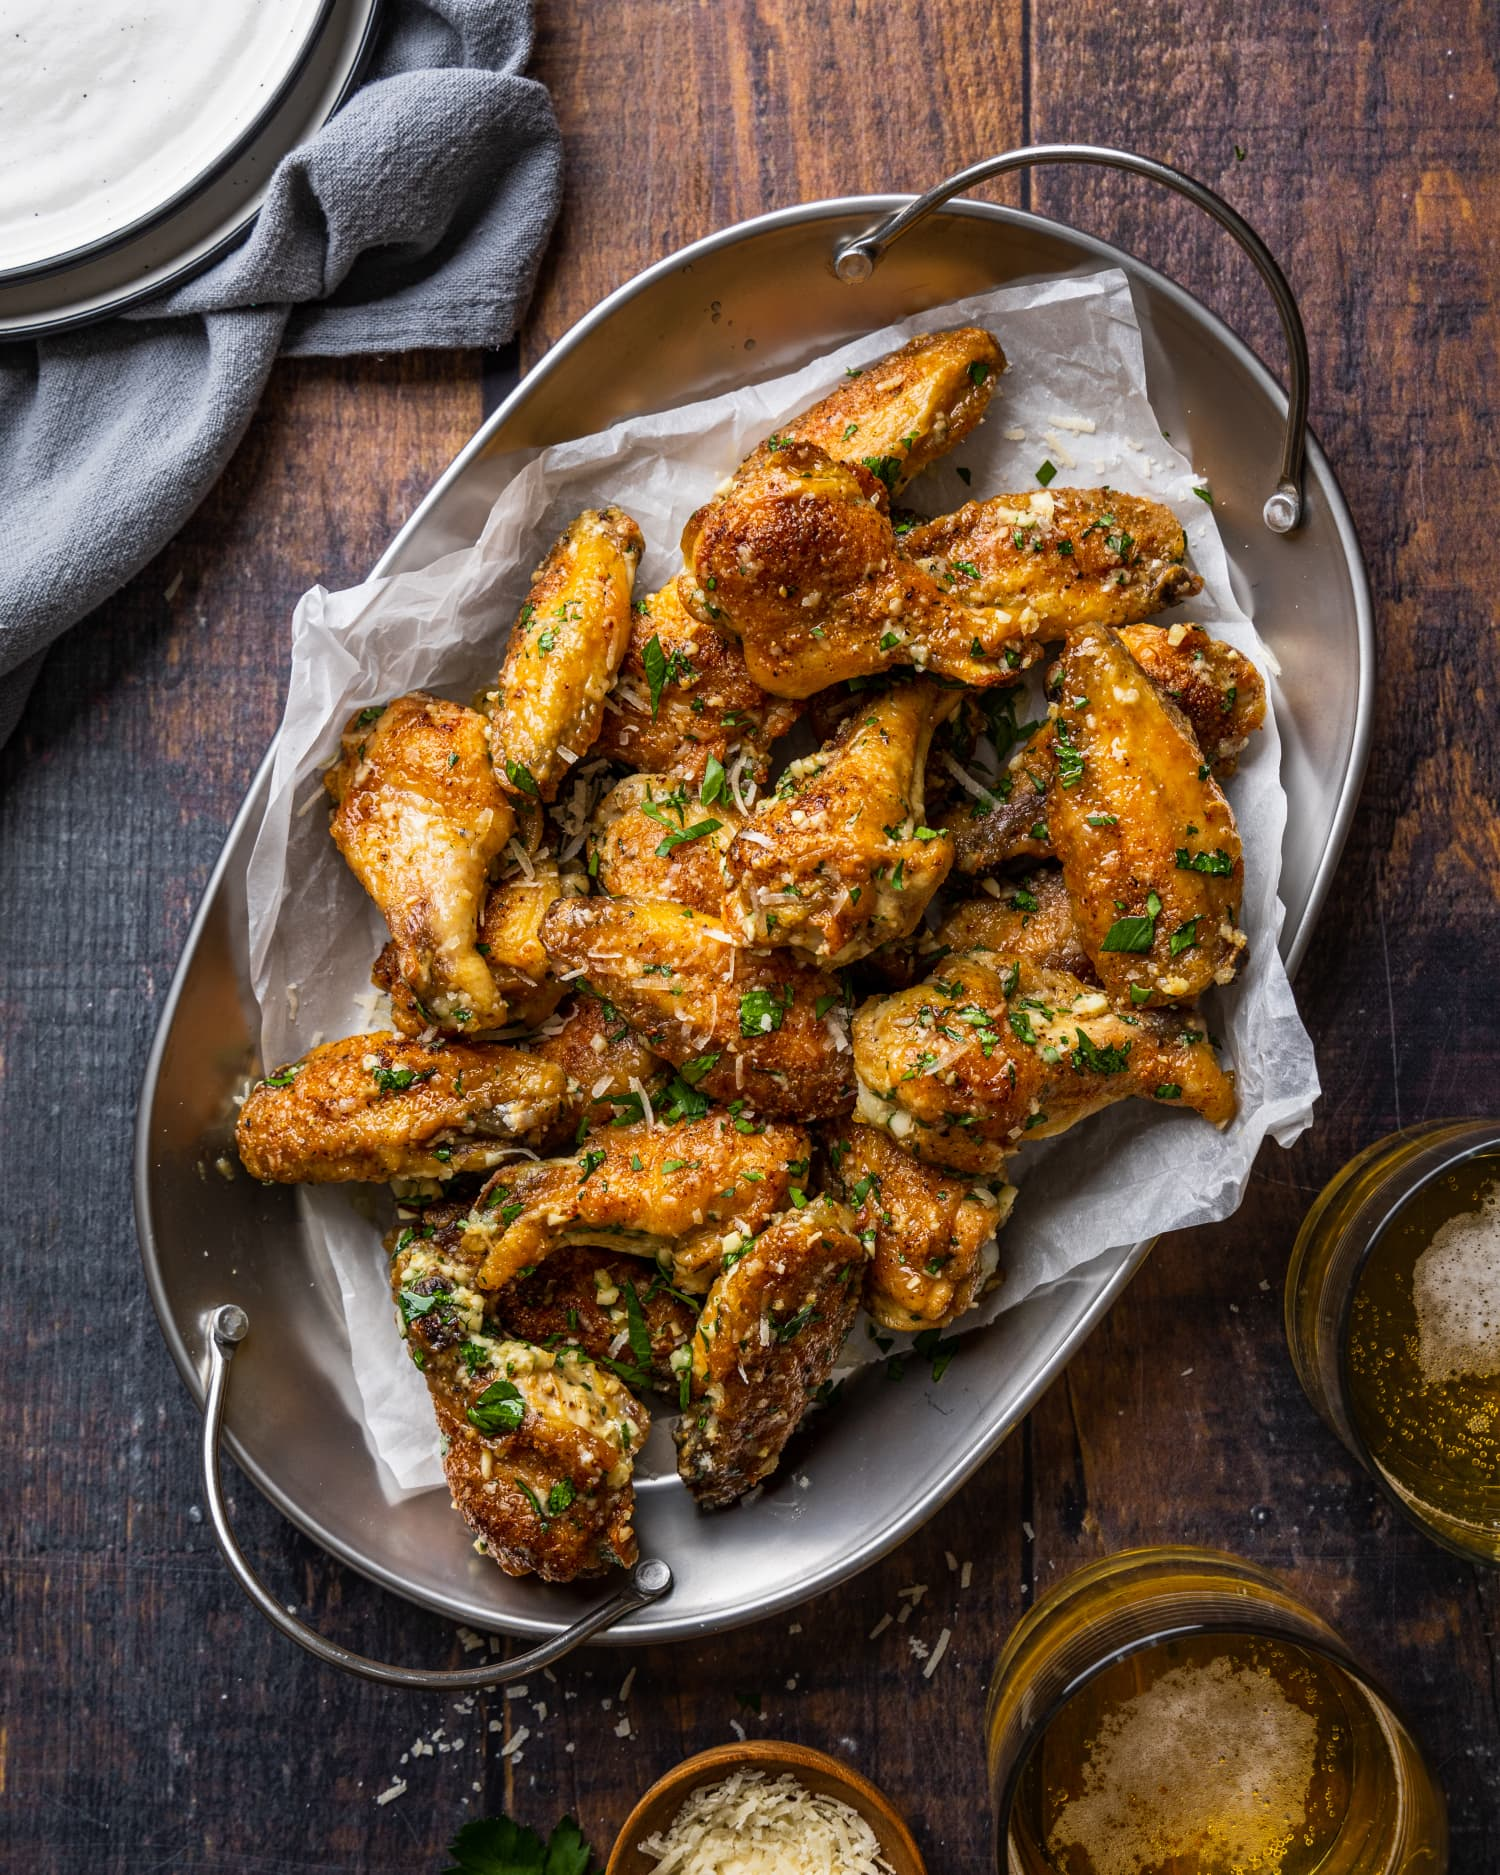 Baked Garlic-Parmesan Wings Are So Crisp, You'd Think They Were Fried